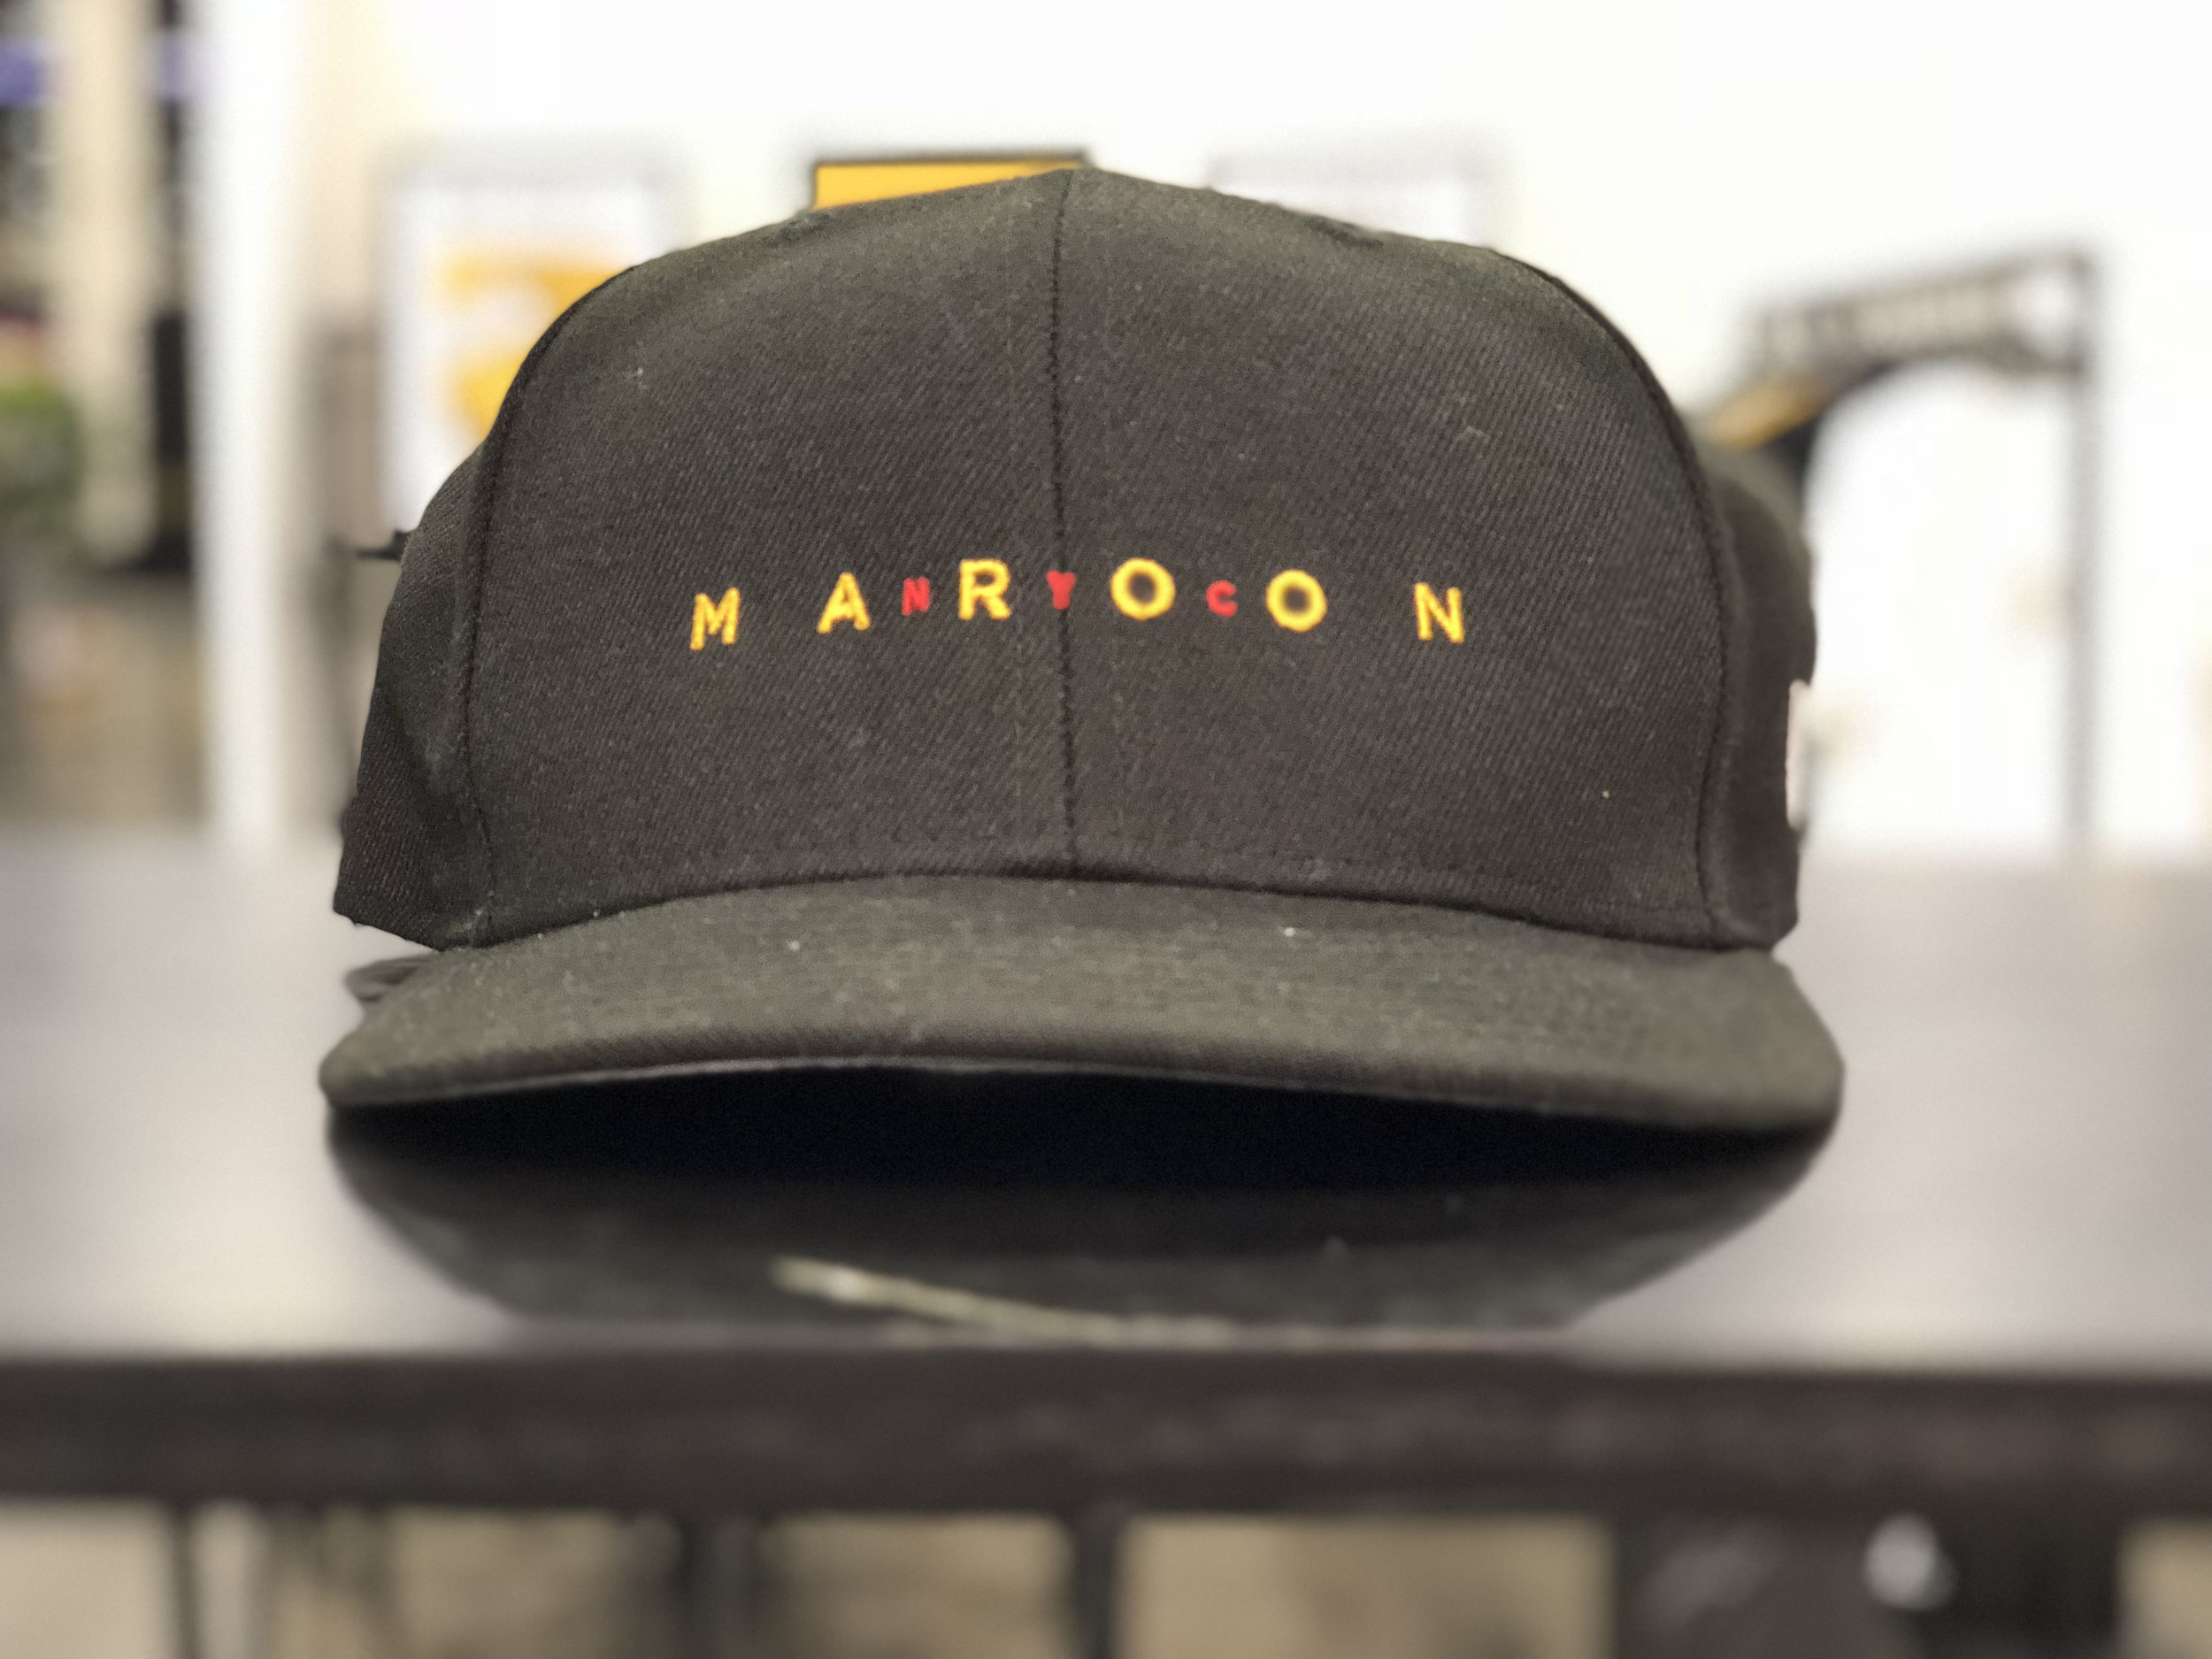 Headwear designed by Skillshare student Chris Frangoulis for his brand,  Maroon NYC,  on display for industry representatives to consider